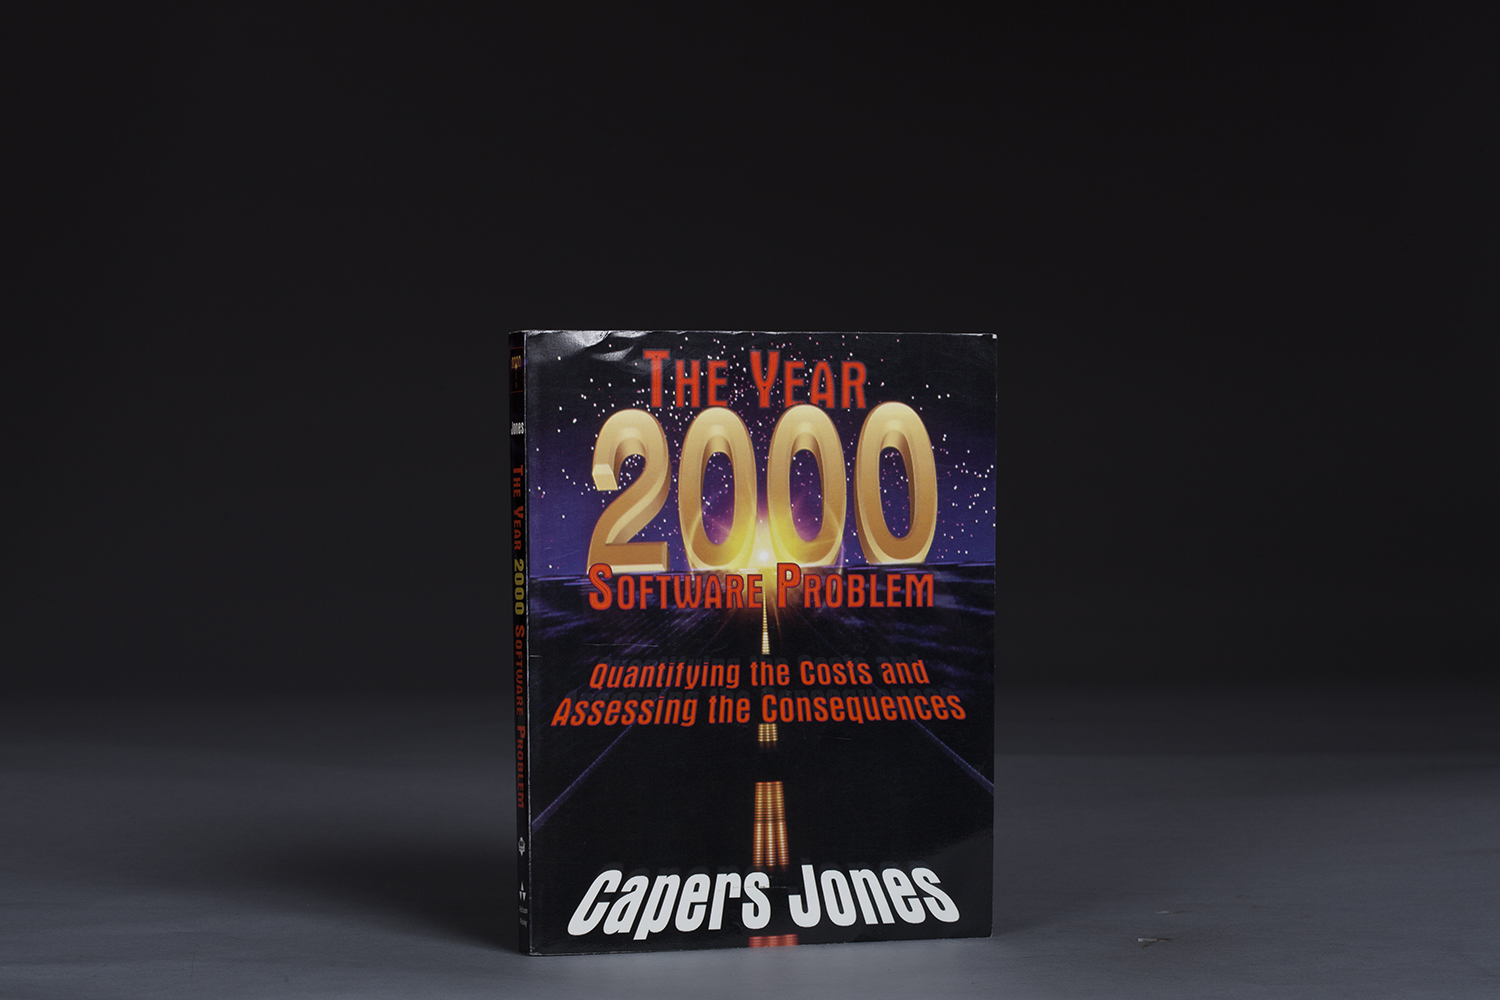 The Year 2000 Software Problem - Quantifying Costs - 1001 Cover.jpg